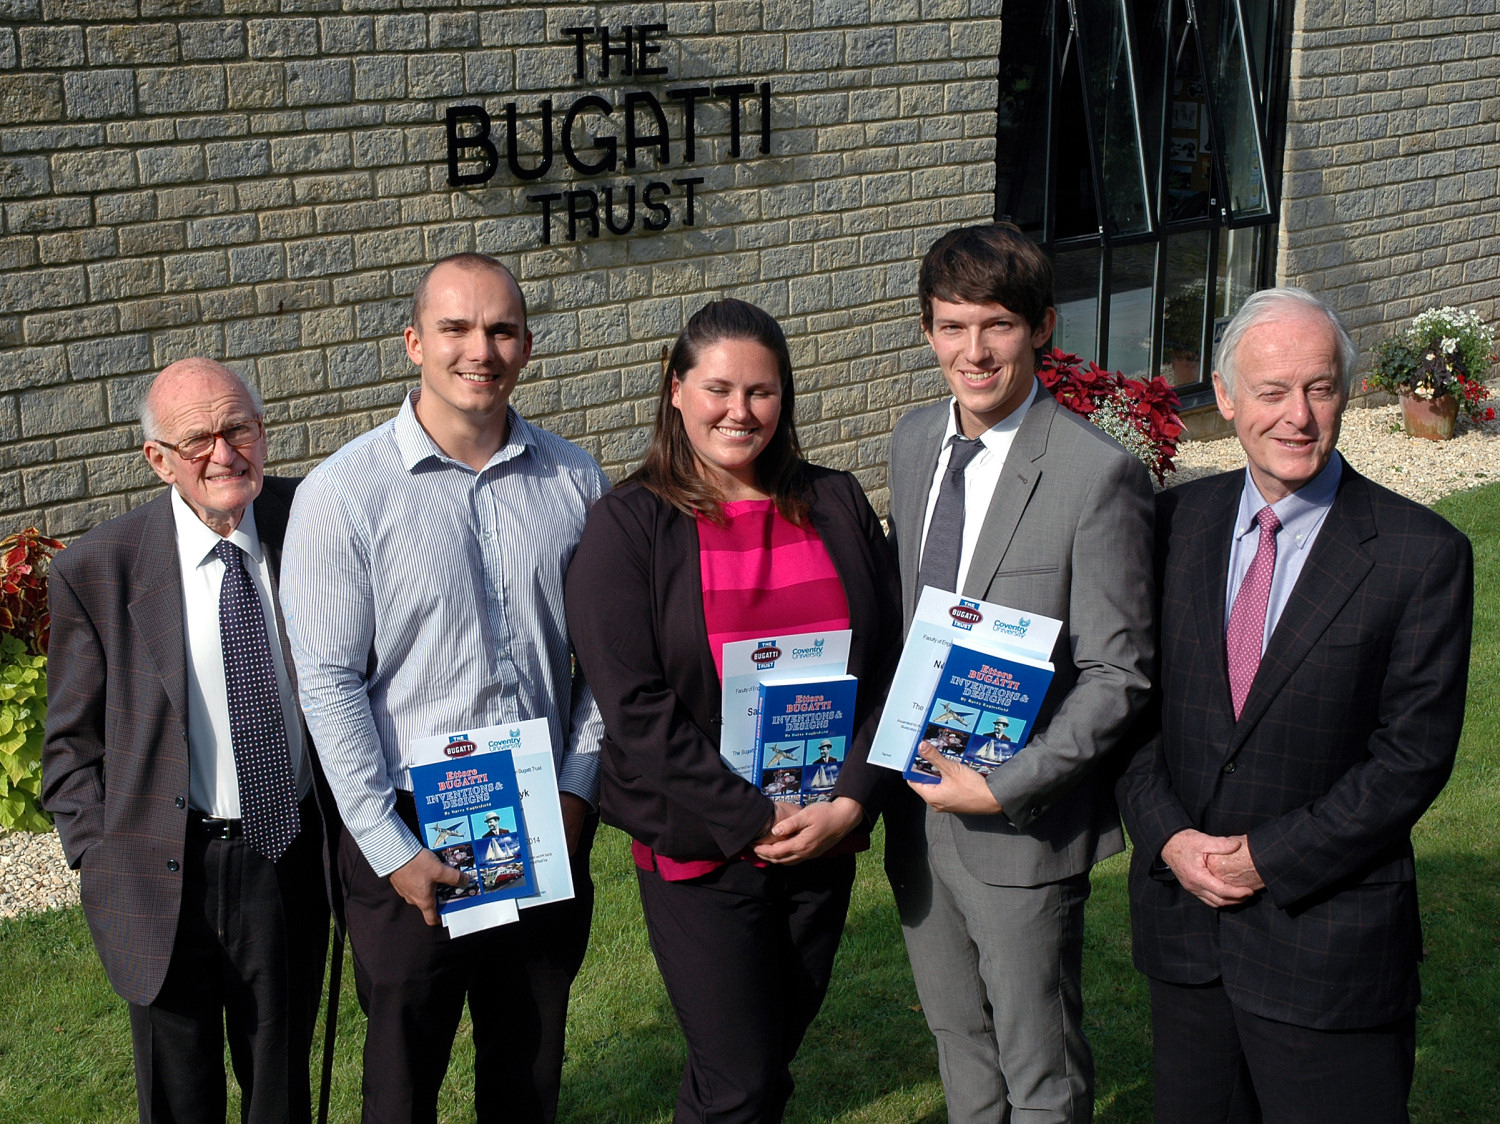 From l to r: Bugatti Trust trustee Barry Price, award winners Oliver Petschenyk, Samantha Parsons, Noach Ben-Haim and Bugatti Trust chairman Hugh Conway